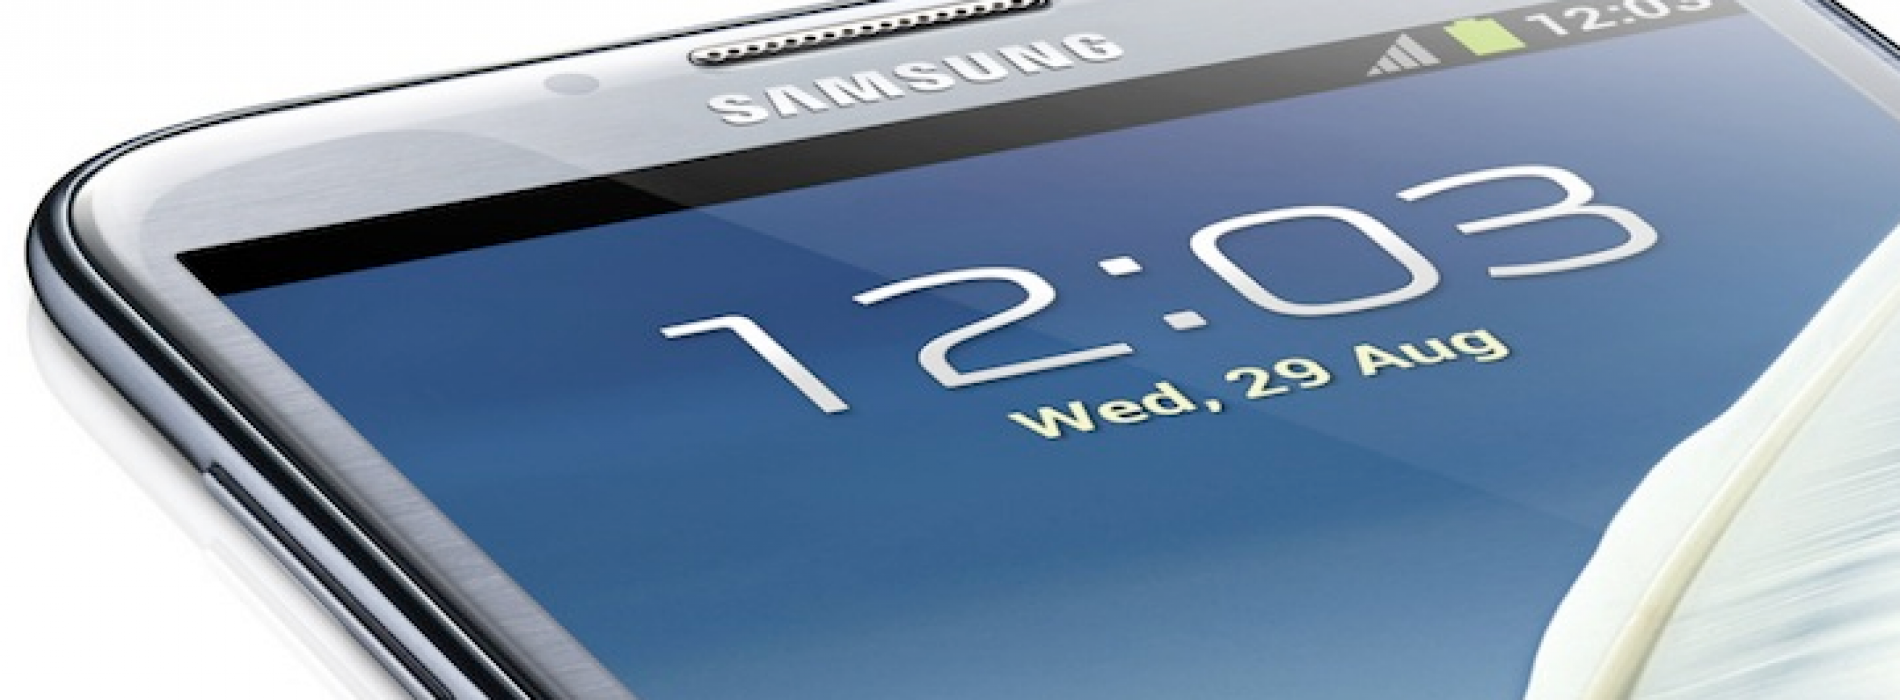 Galaxy Note II announced for AT&T, Sprint, T-Mobile, Verizon, and U.S. Cellular